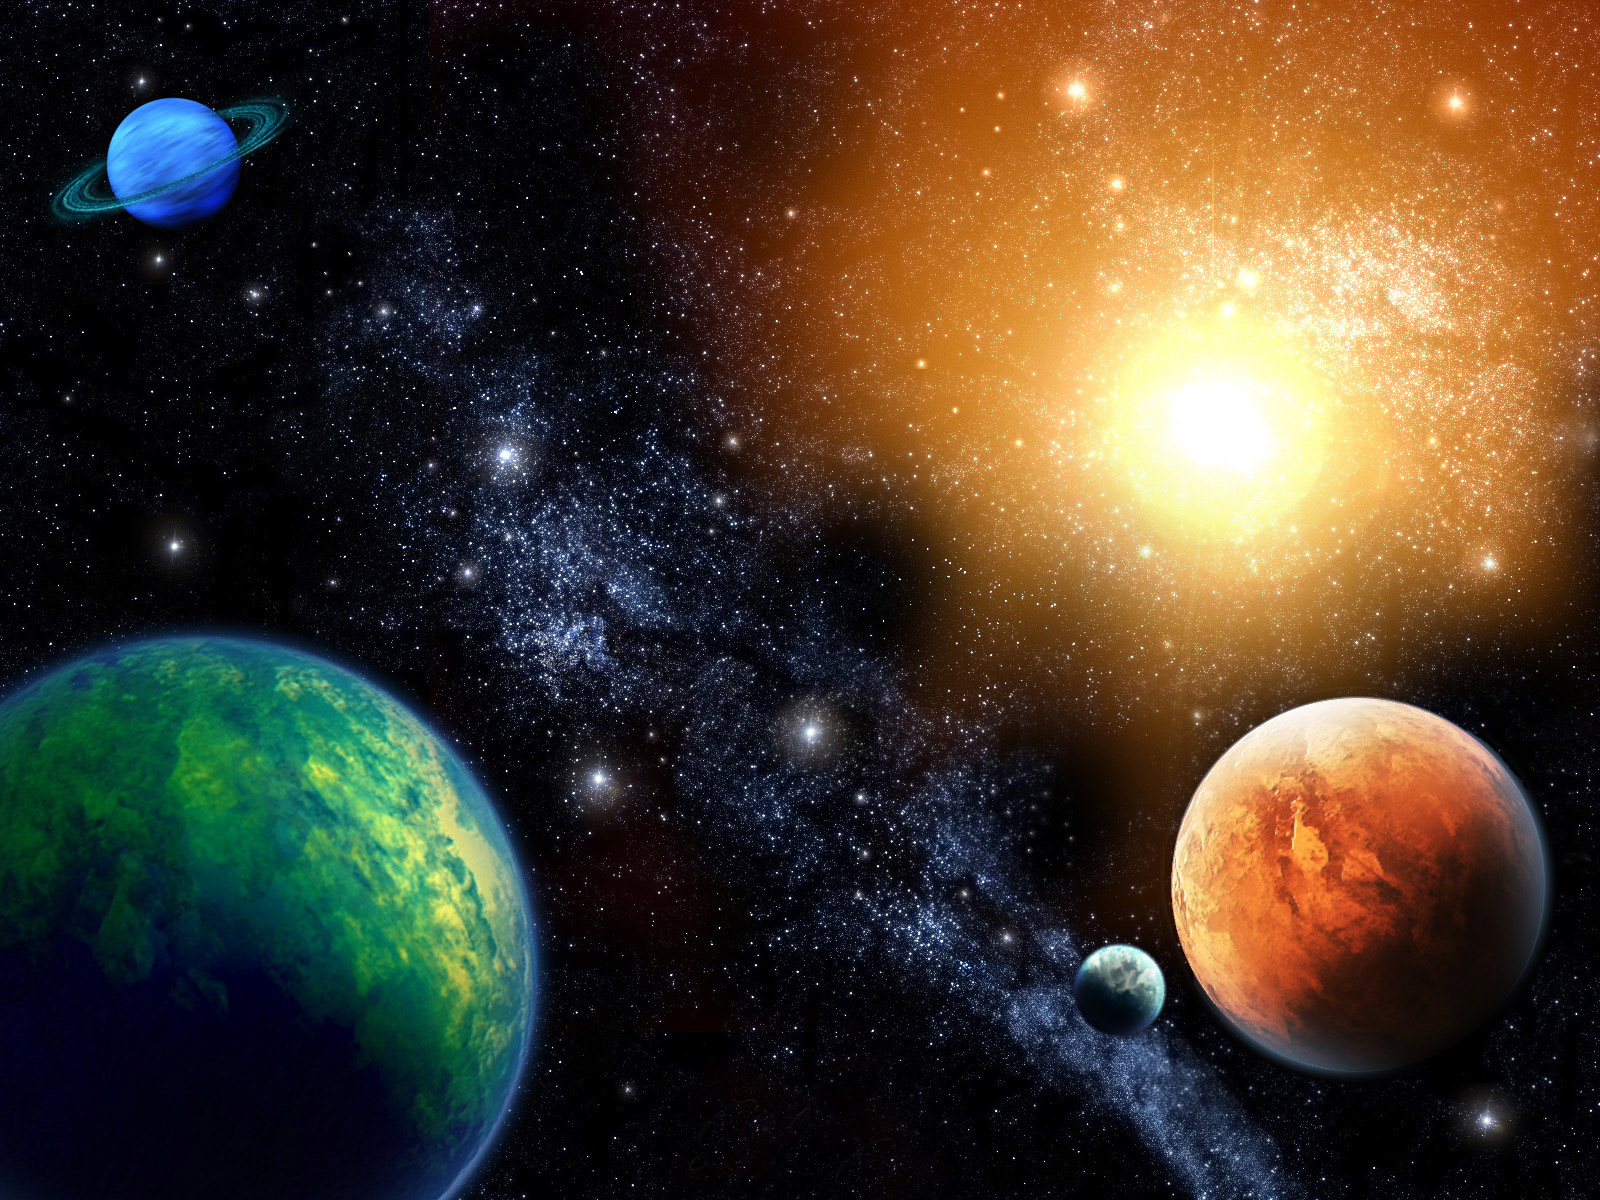 universe solar system images - HD1600×1200